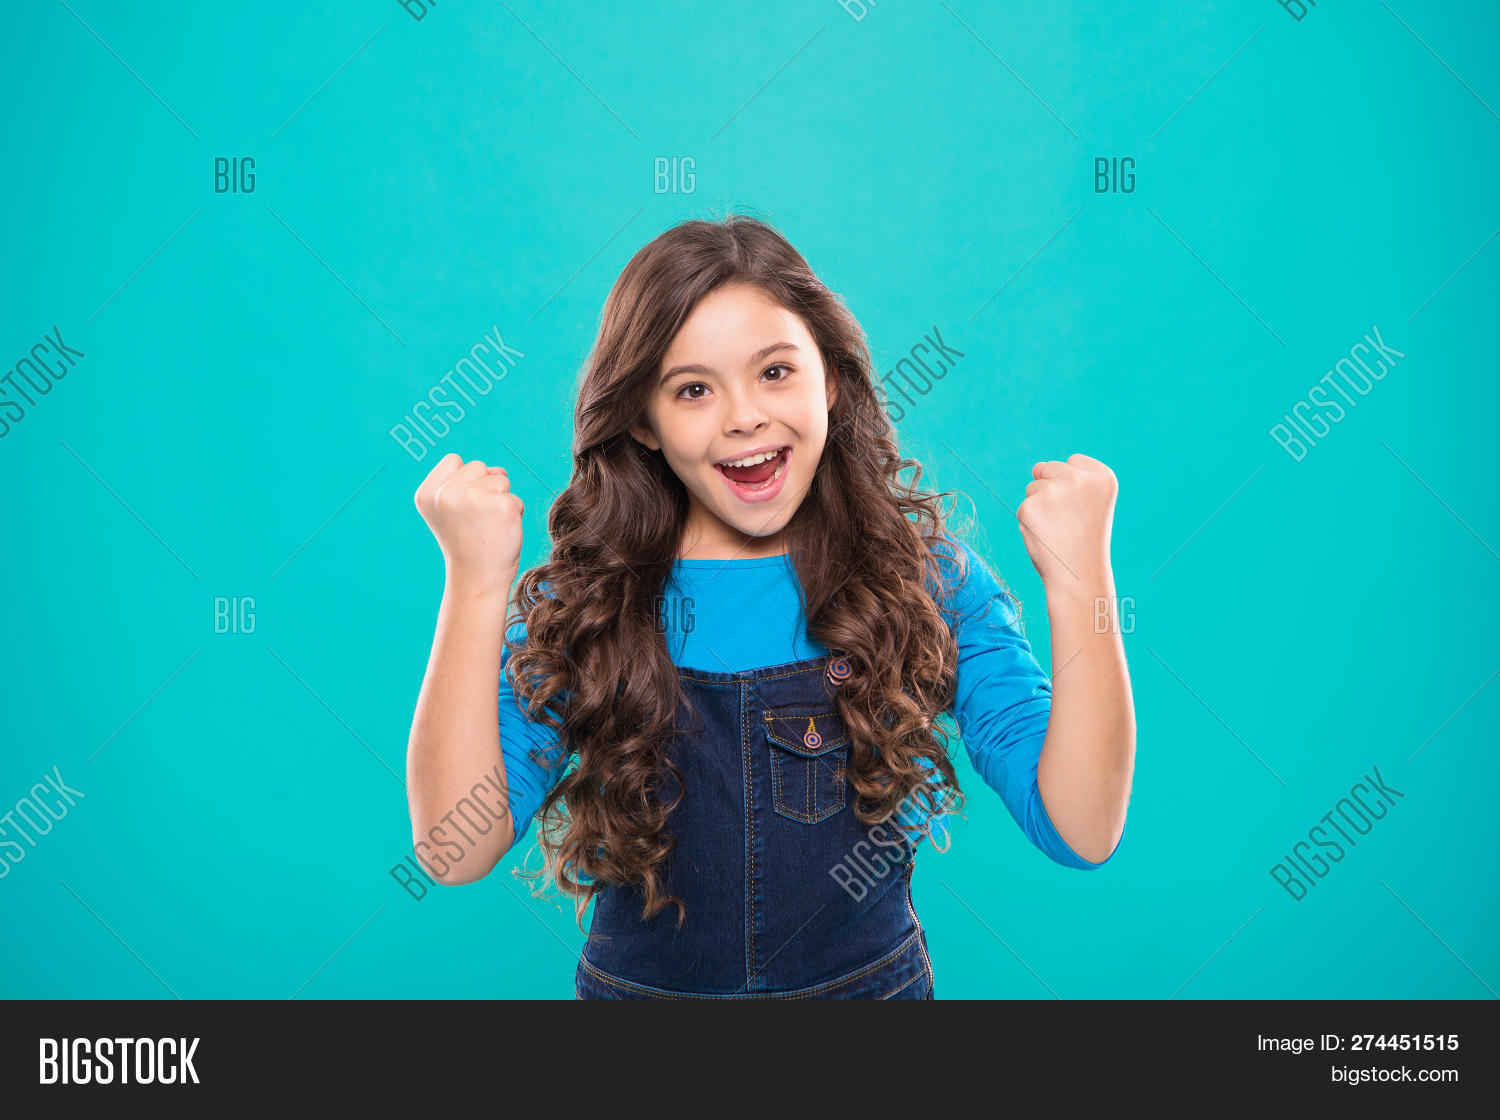 Kid Cheerful Celebrate Victory. Girl Cute Child Long Curly Hair Happy Smiling. Child Psychology And